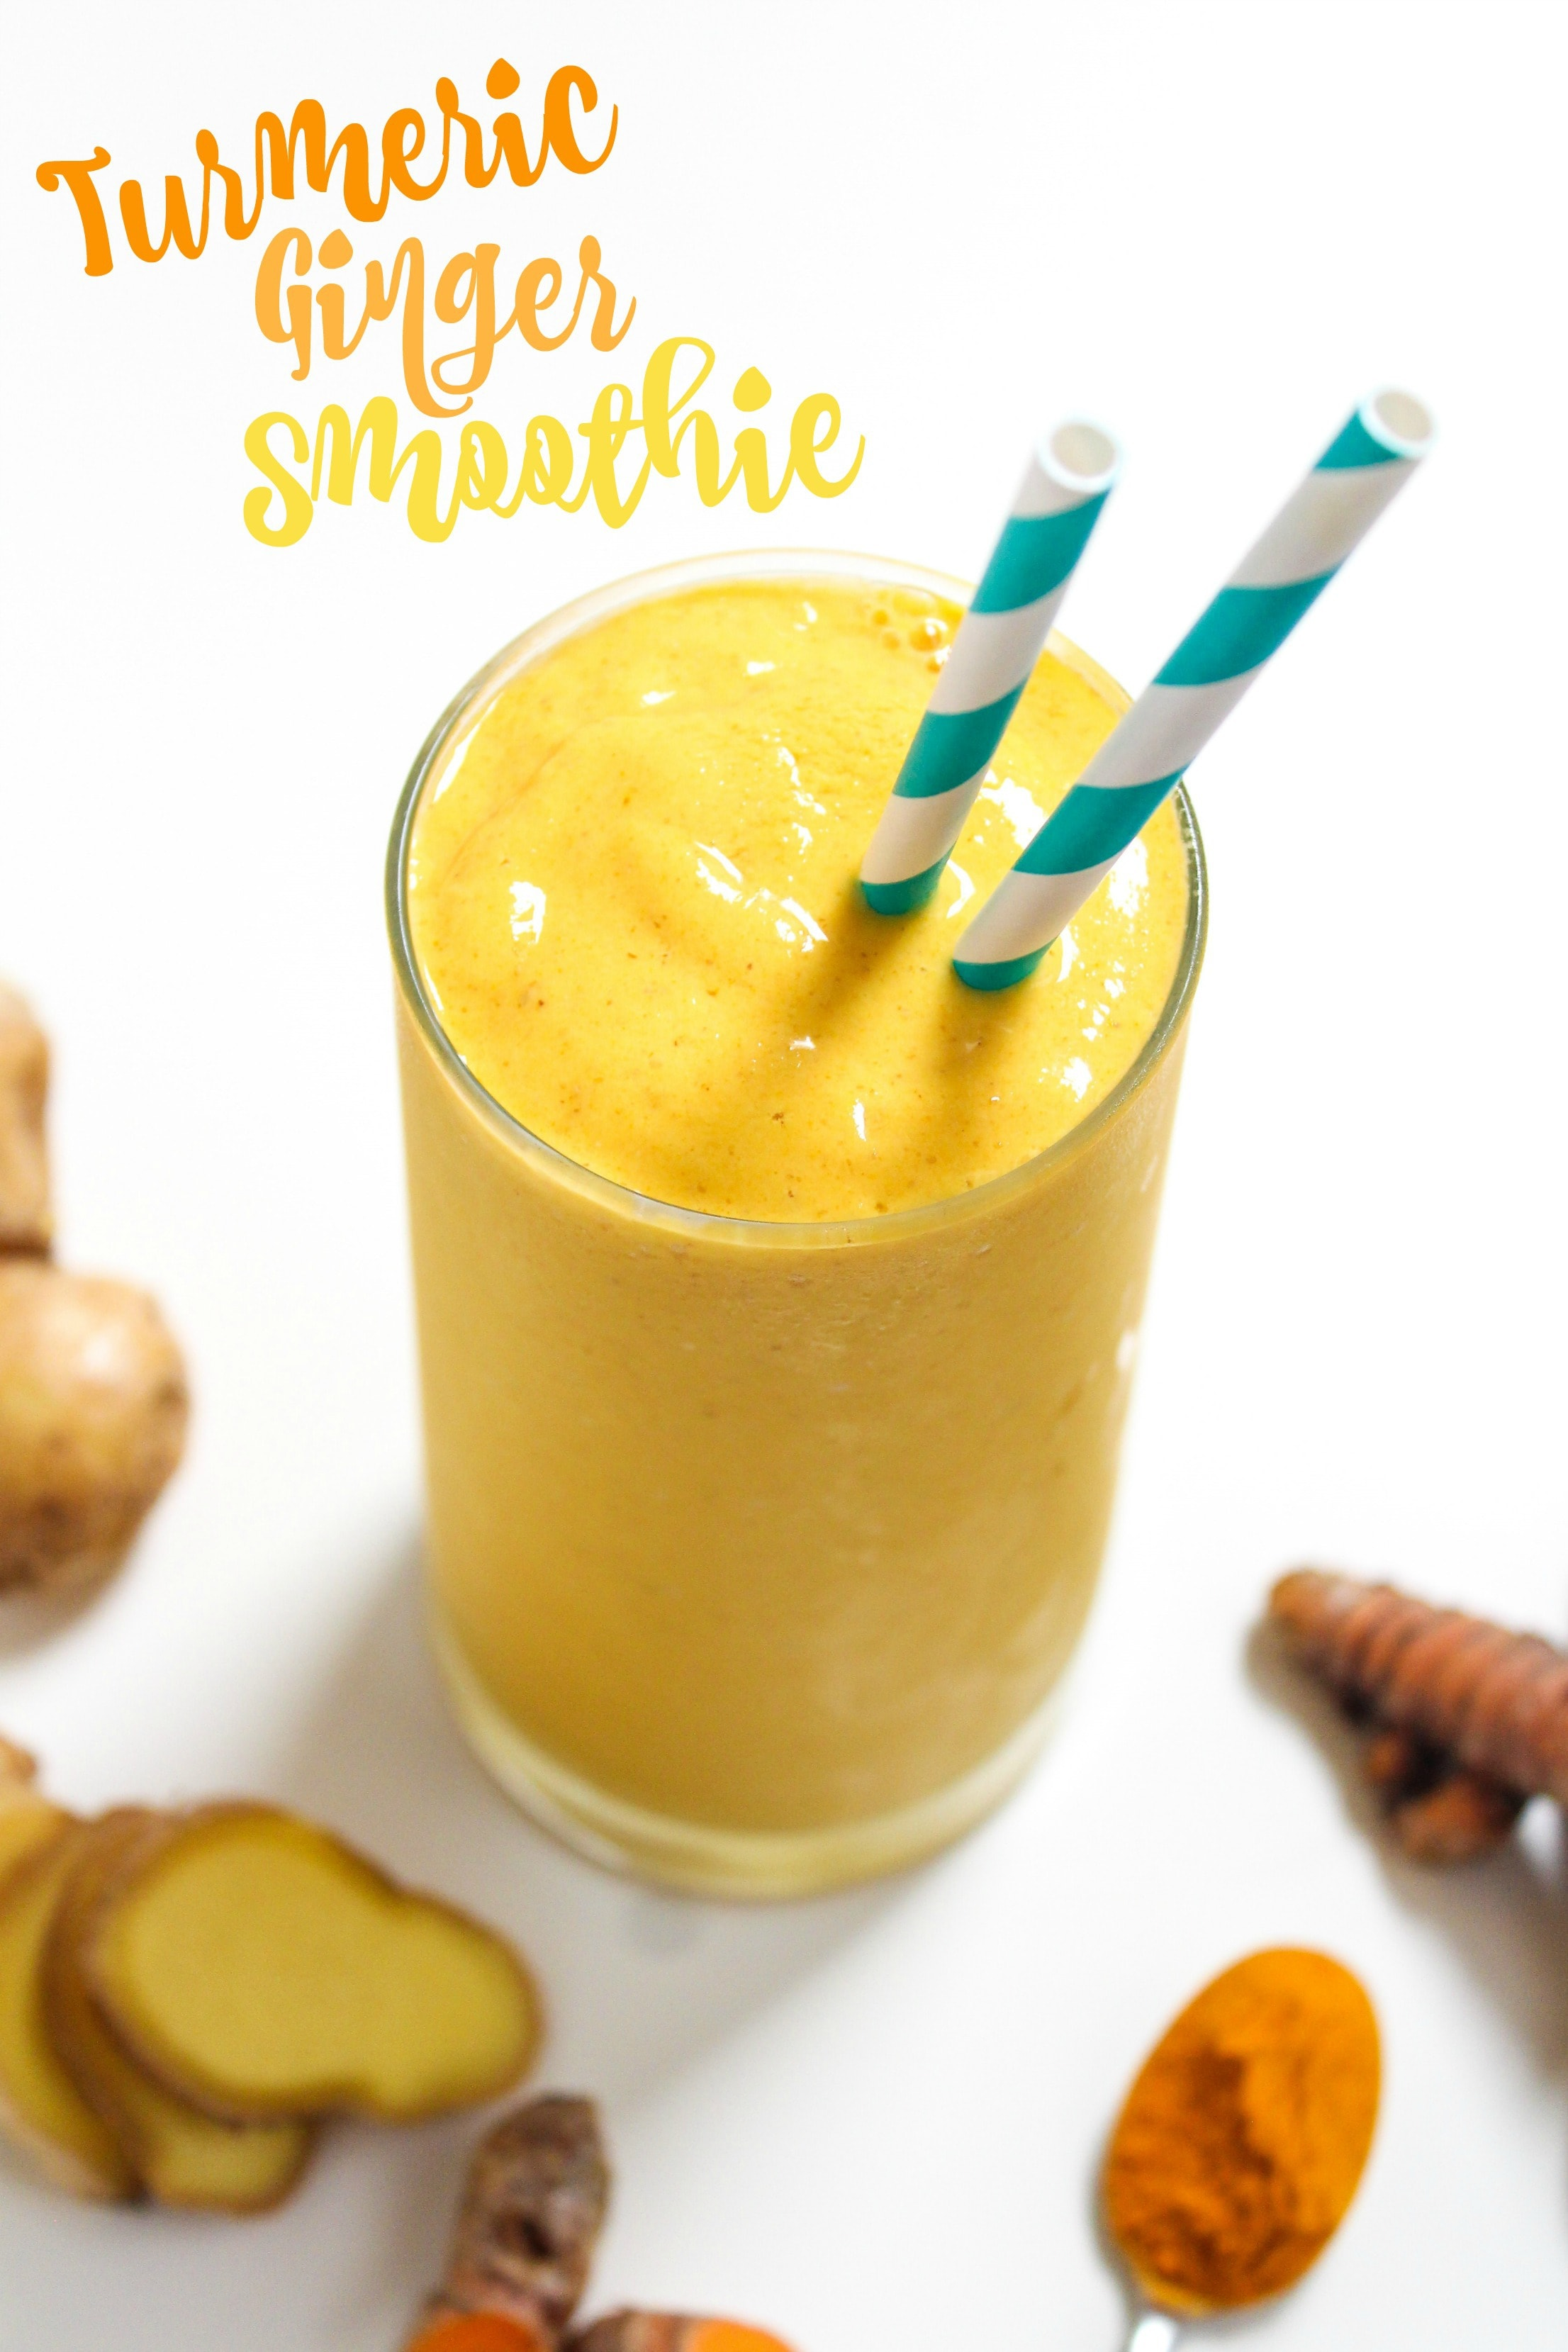 This Turmeric Ginger Smoothie is sweet, spicy, creamy, and packed with nutritious ingredients!